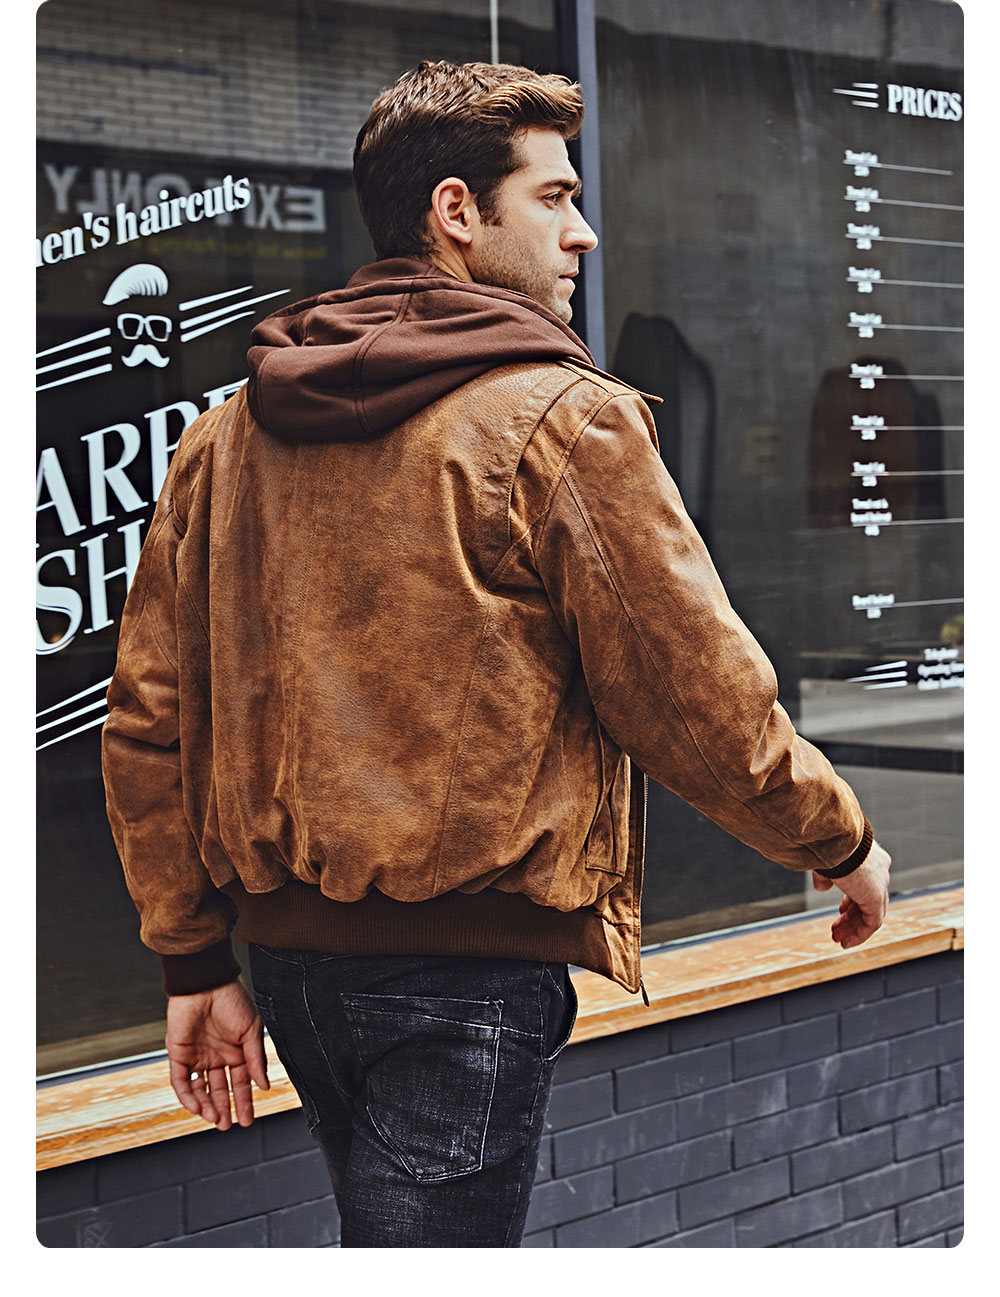 H304e2305cda9408188f0080582b062f6e FLAVOR New Men's Genuine Leather Bomber Jackets Removable Hood Men Air Forca Aviator winter coat Men Warm Real Leather Jacket